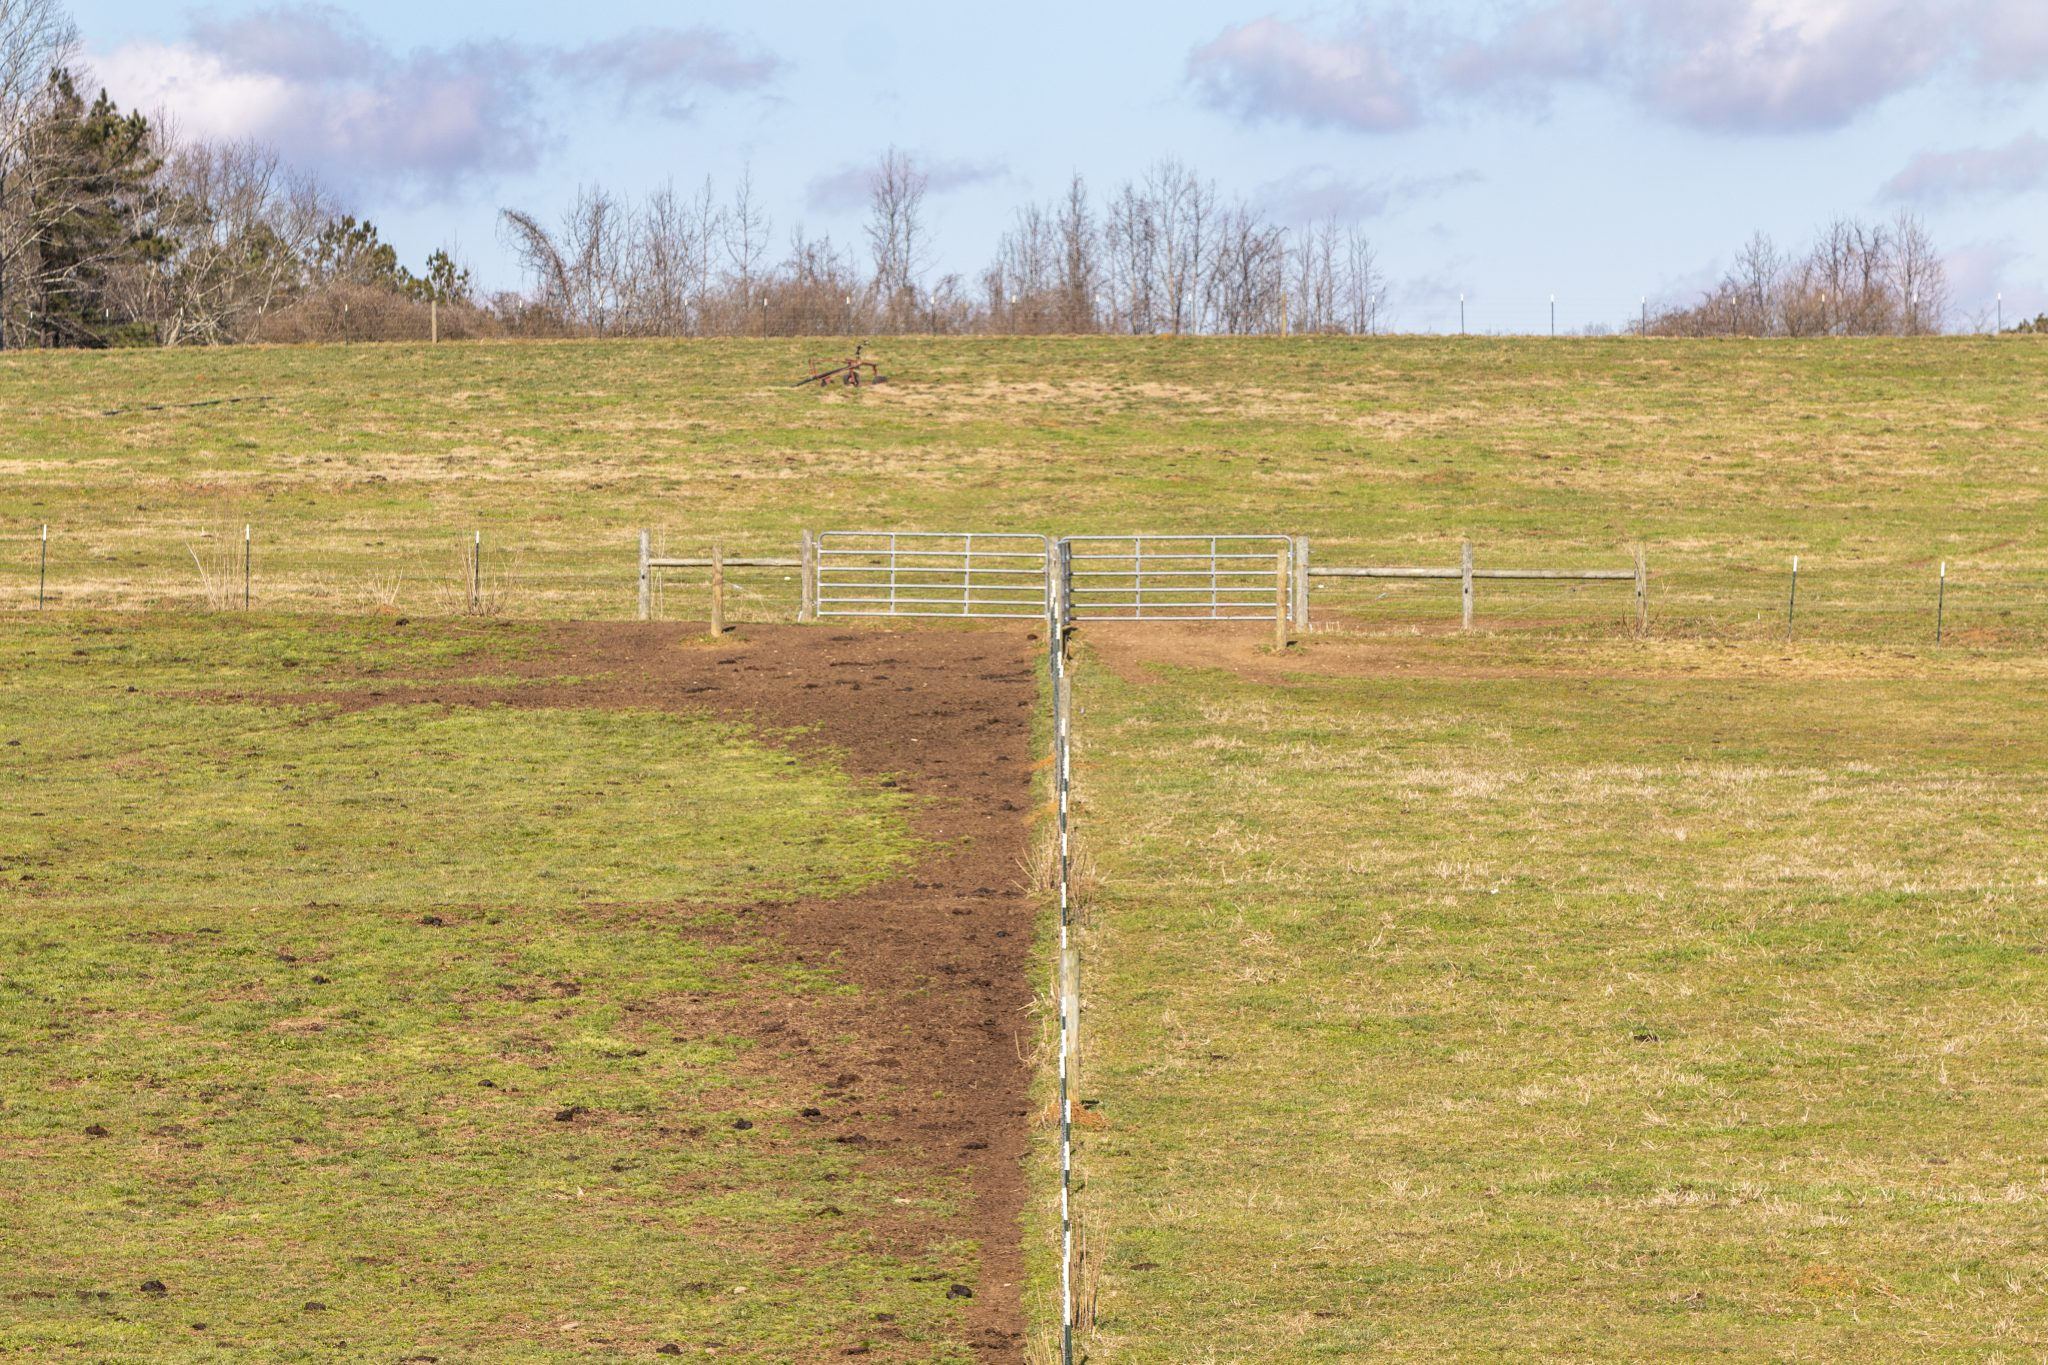 Pasture with fence